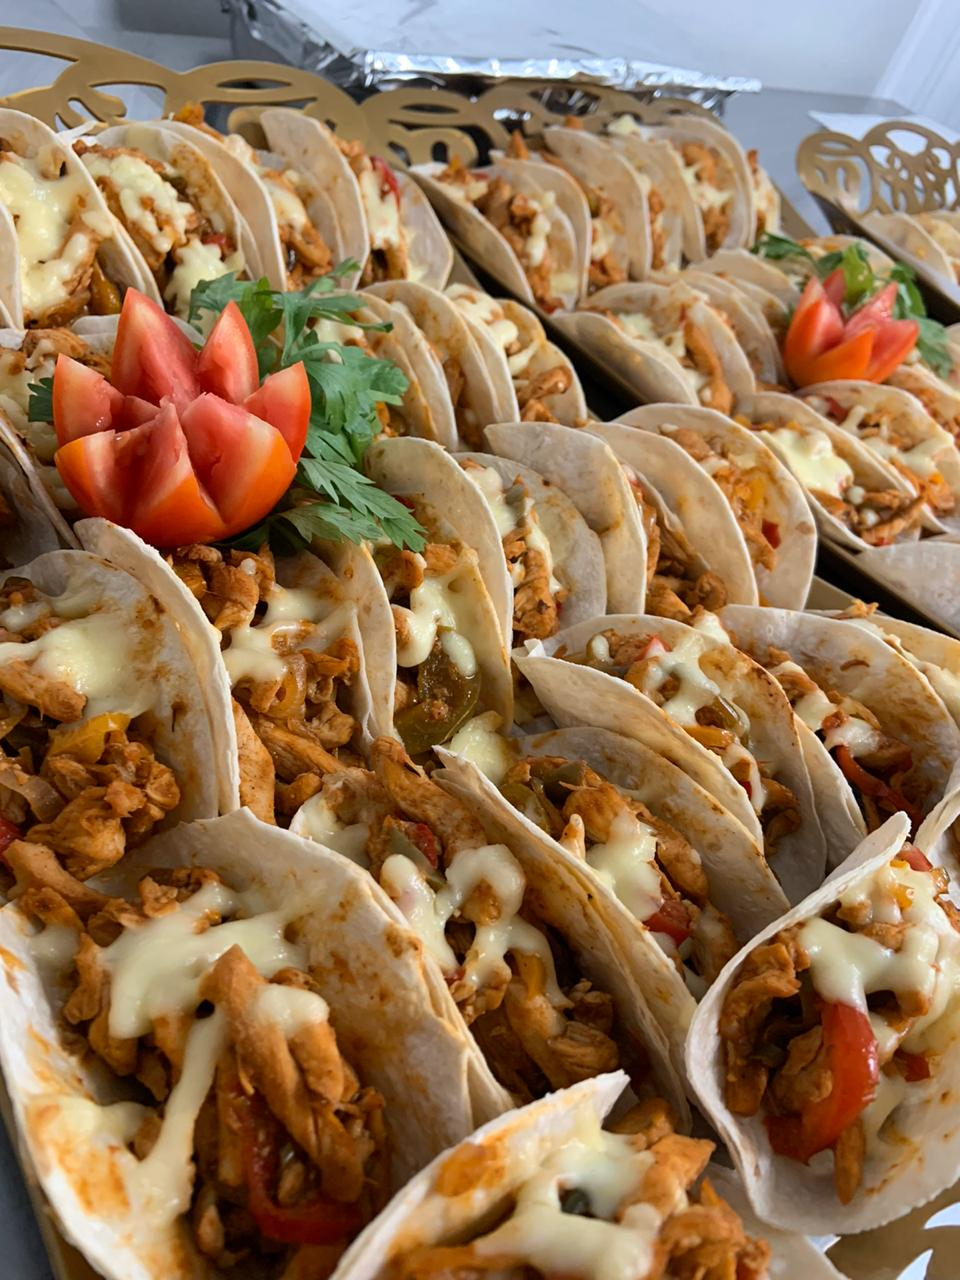 Yacht Catering in Dubai - Tacos